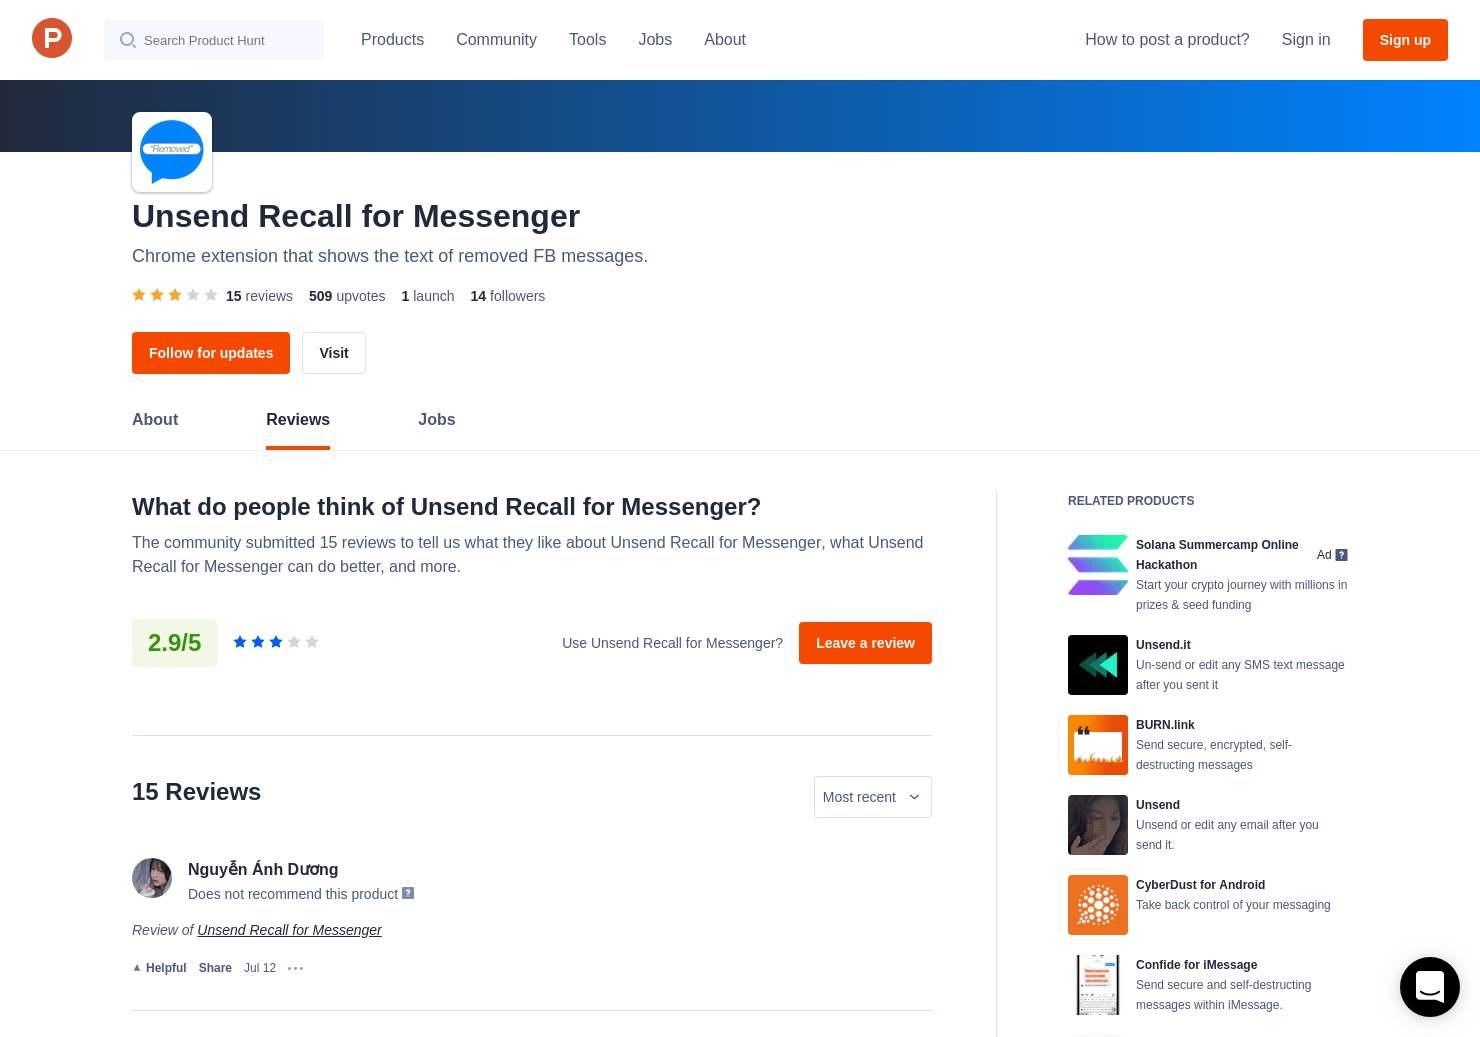 4 Unsend Recall for Messenger Reviews - Pros, Cons and